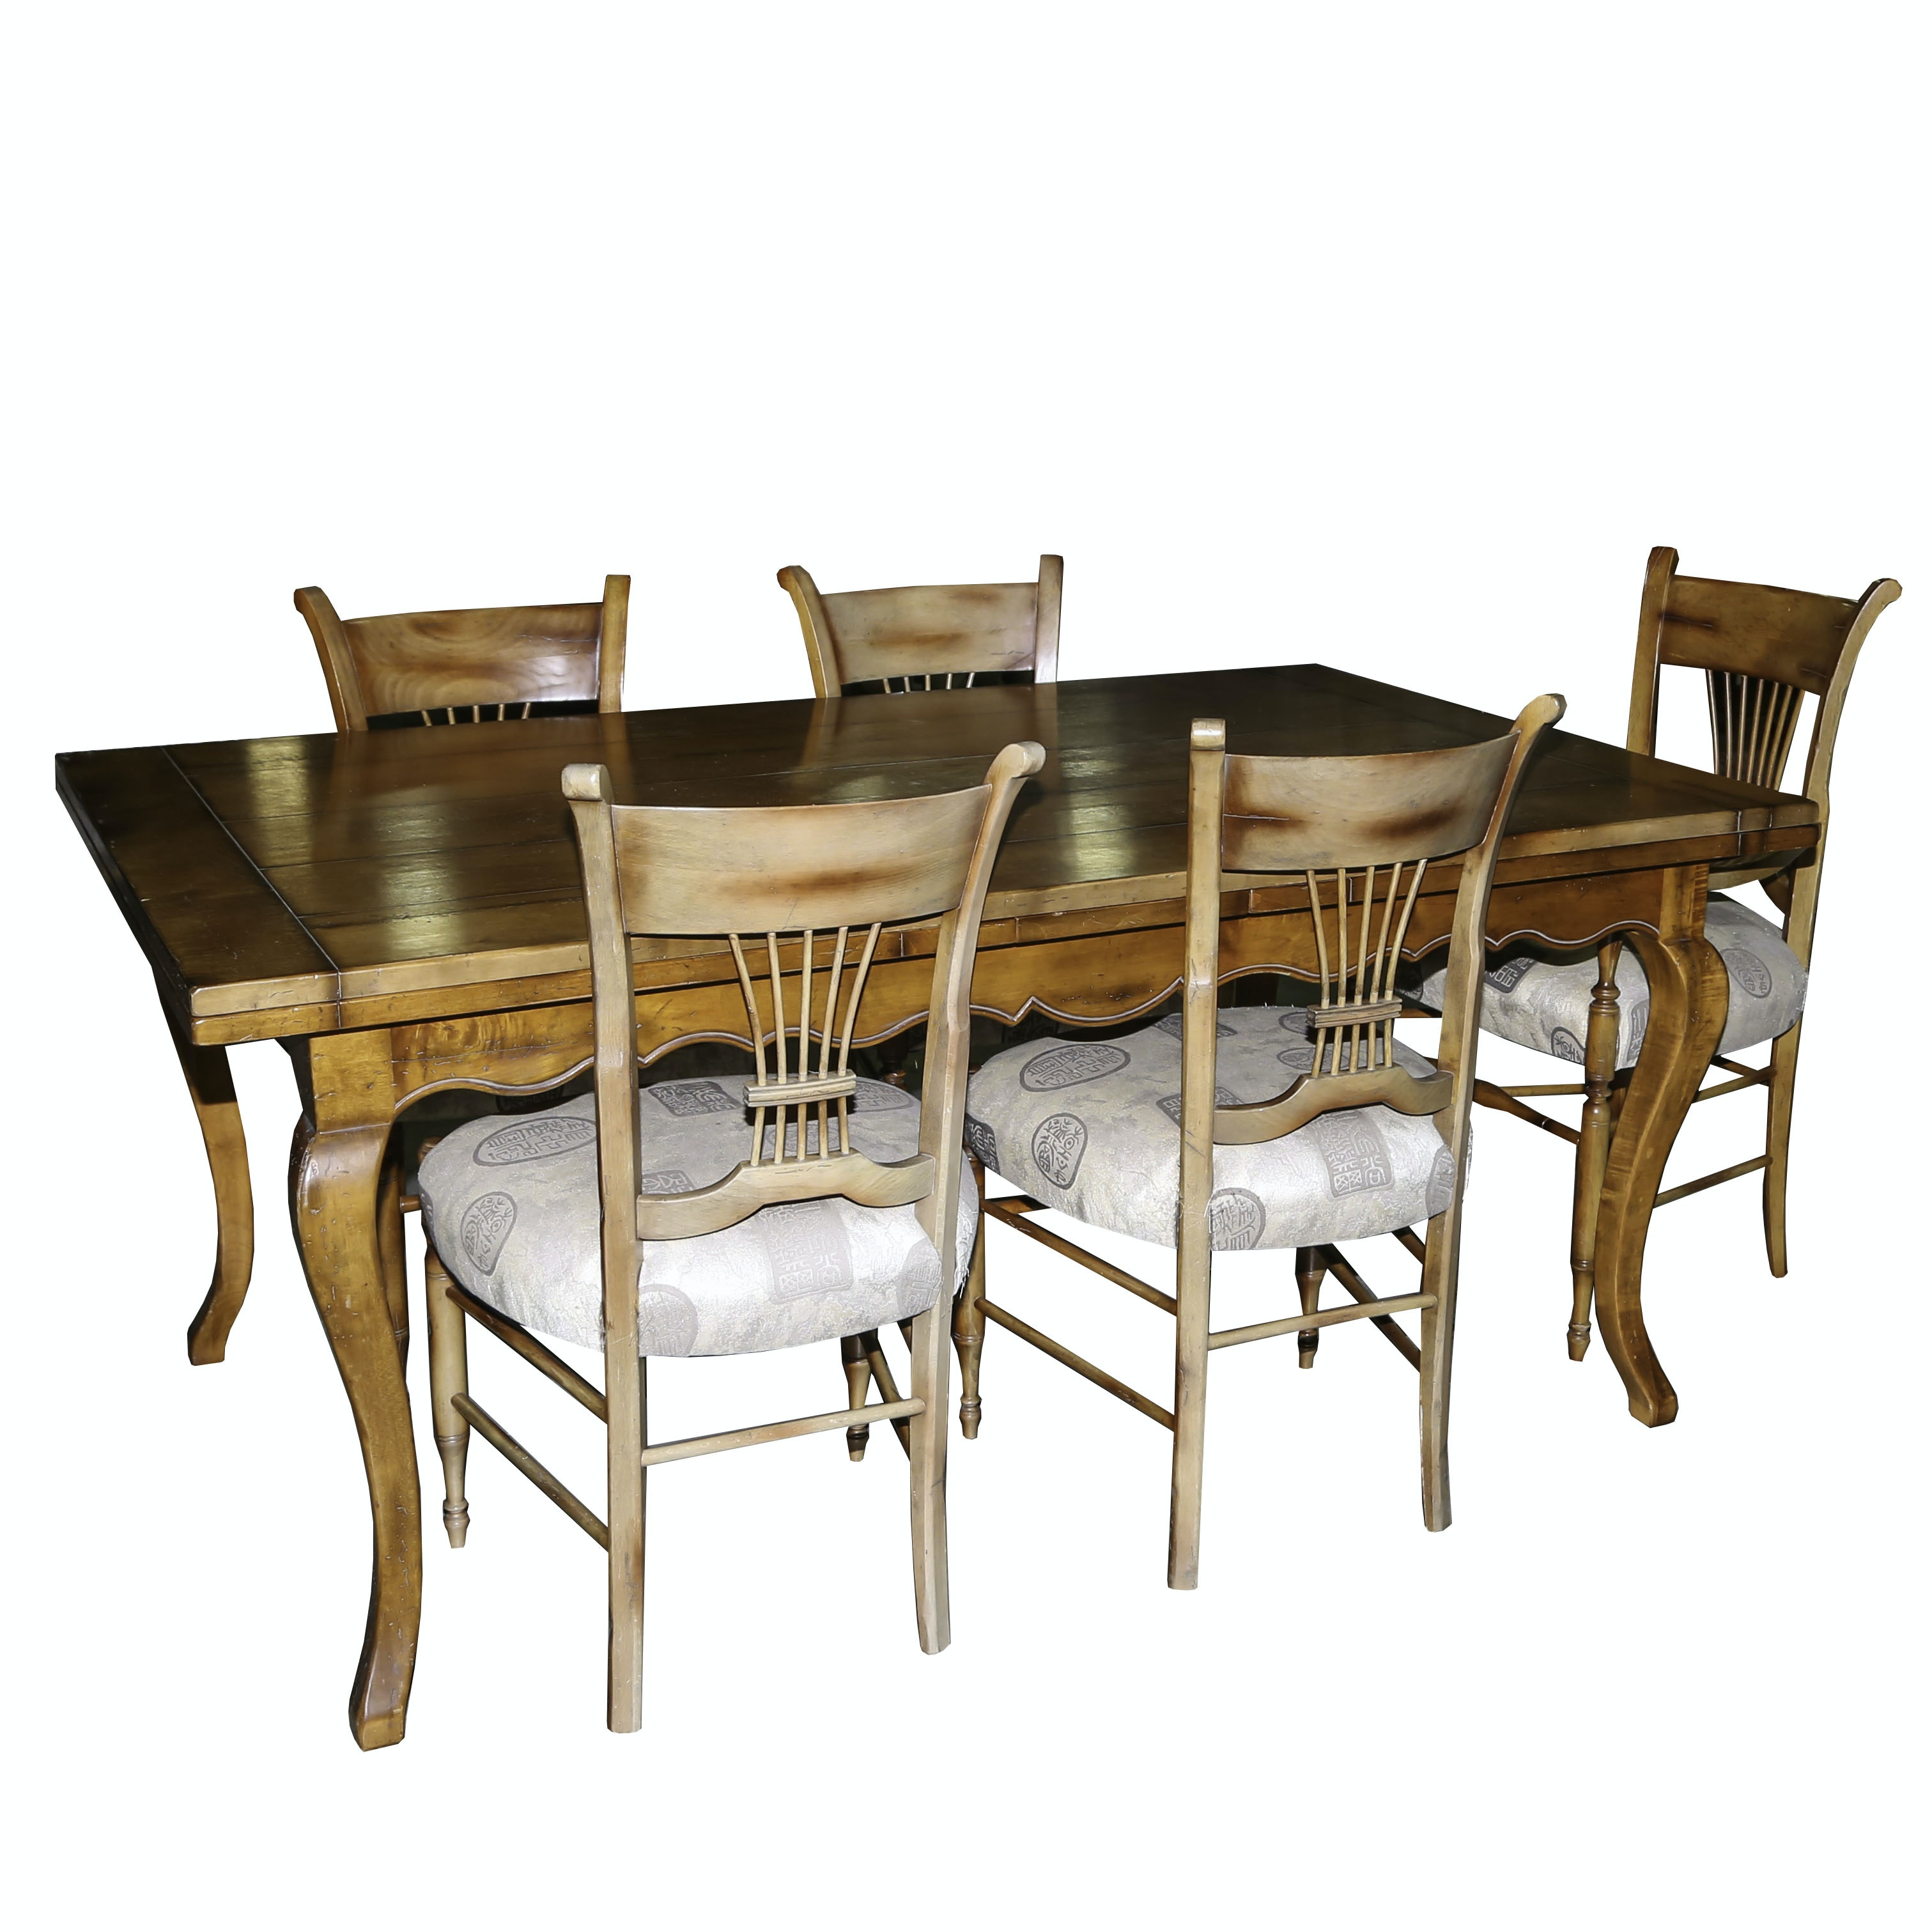 French Country Dining Set by Milling Road